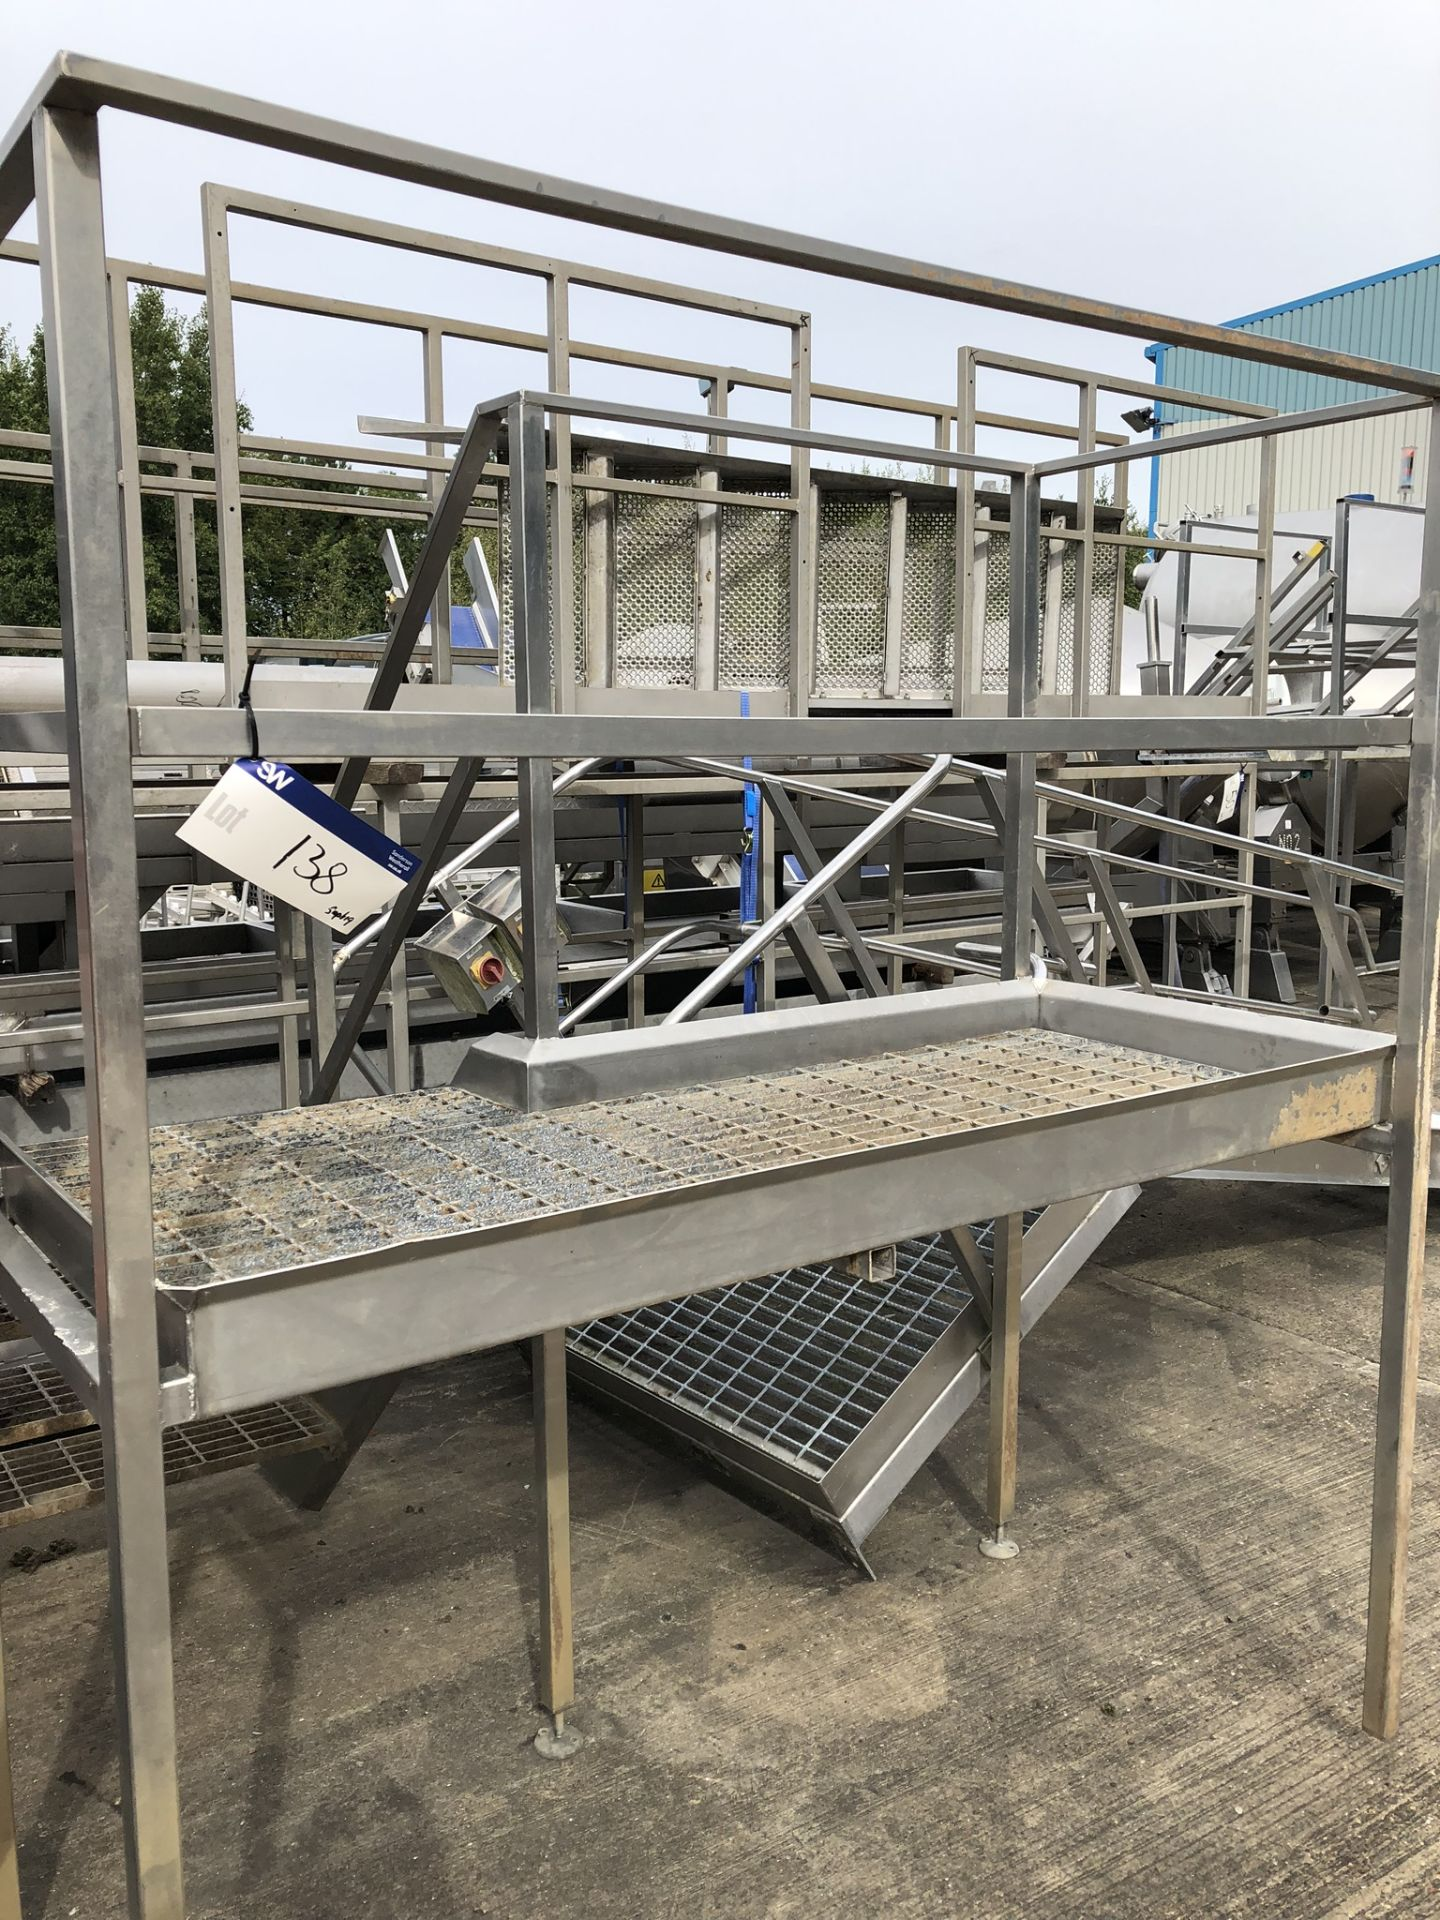 Lotto 138 - Four Step Inspection Gantry, approx. 1.9m x 0.8m x 2m high, lift out charge - £30